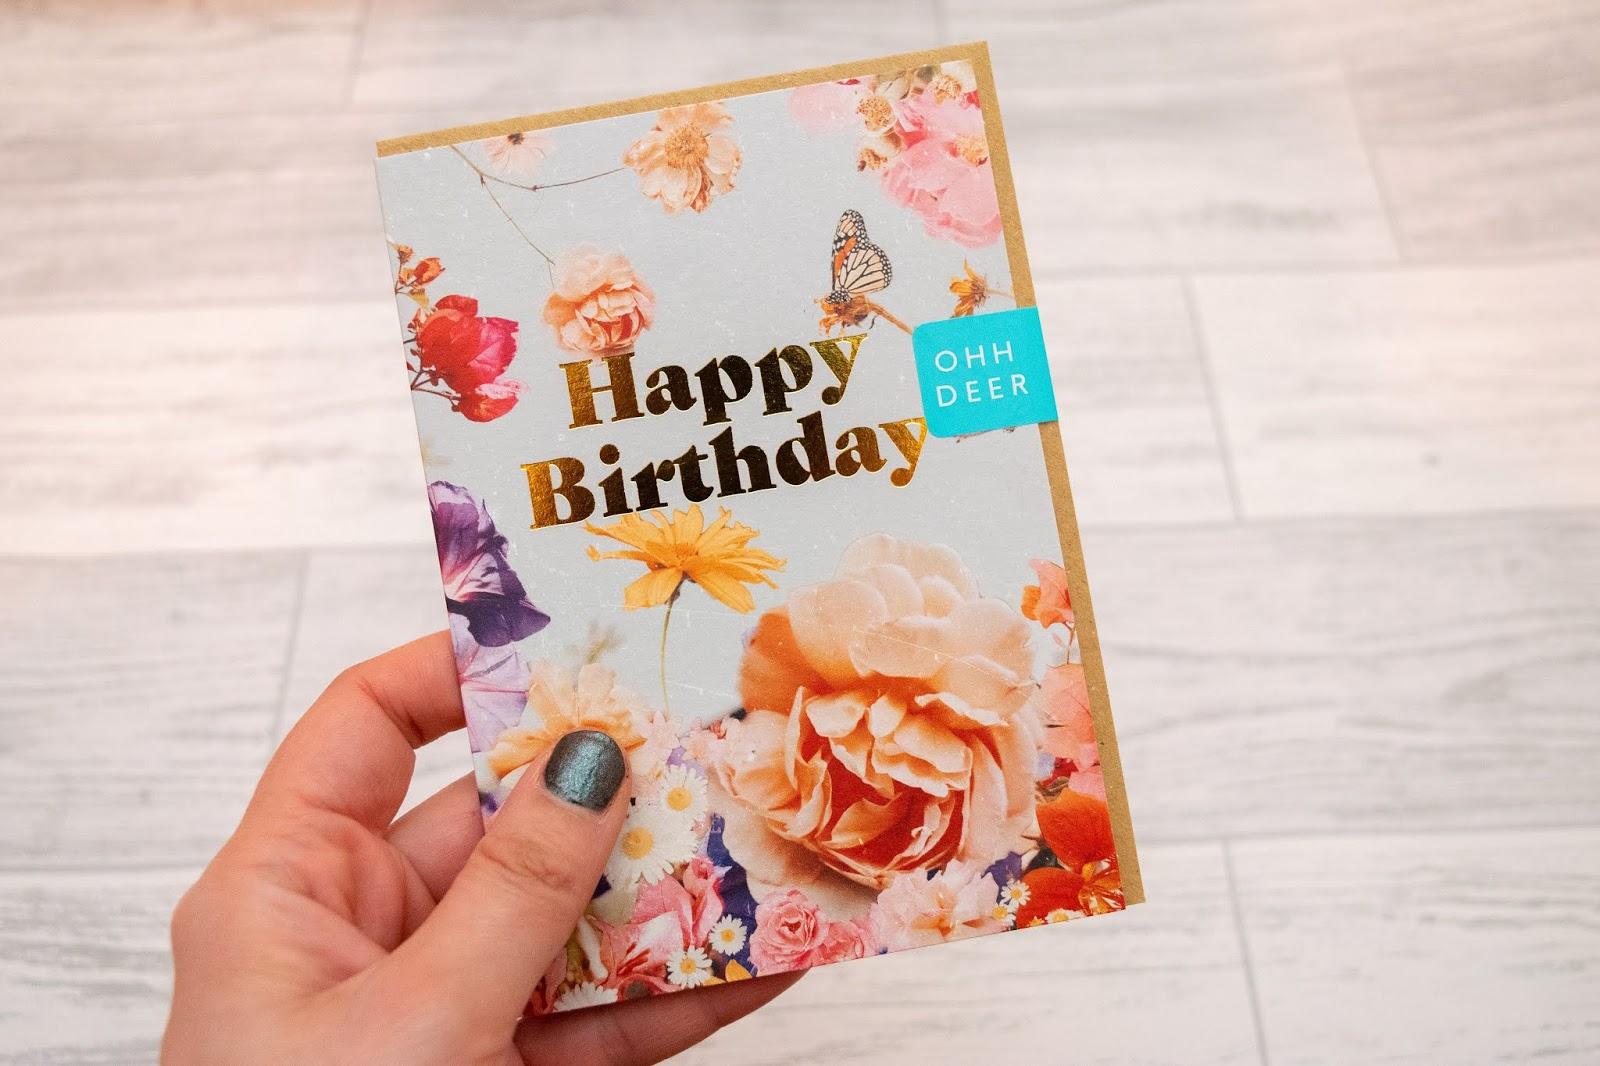 A small birthday card with happy birthday in gold foiling and a flowers on a light blue background.